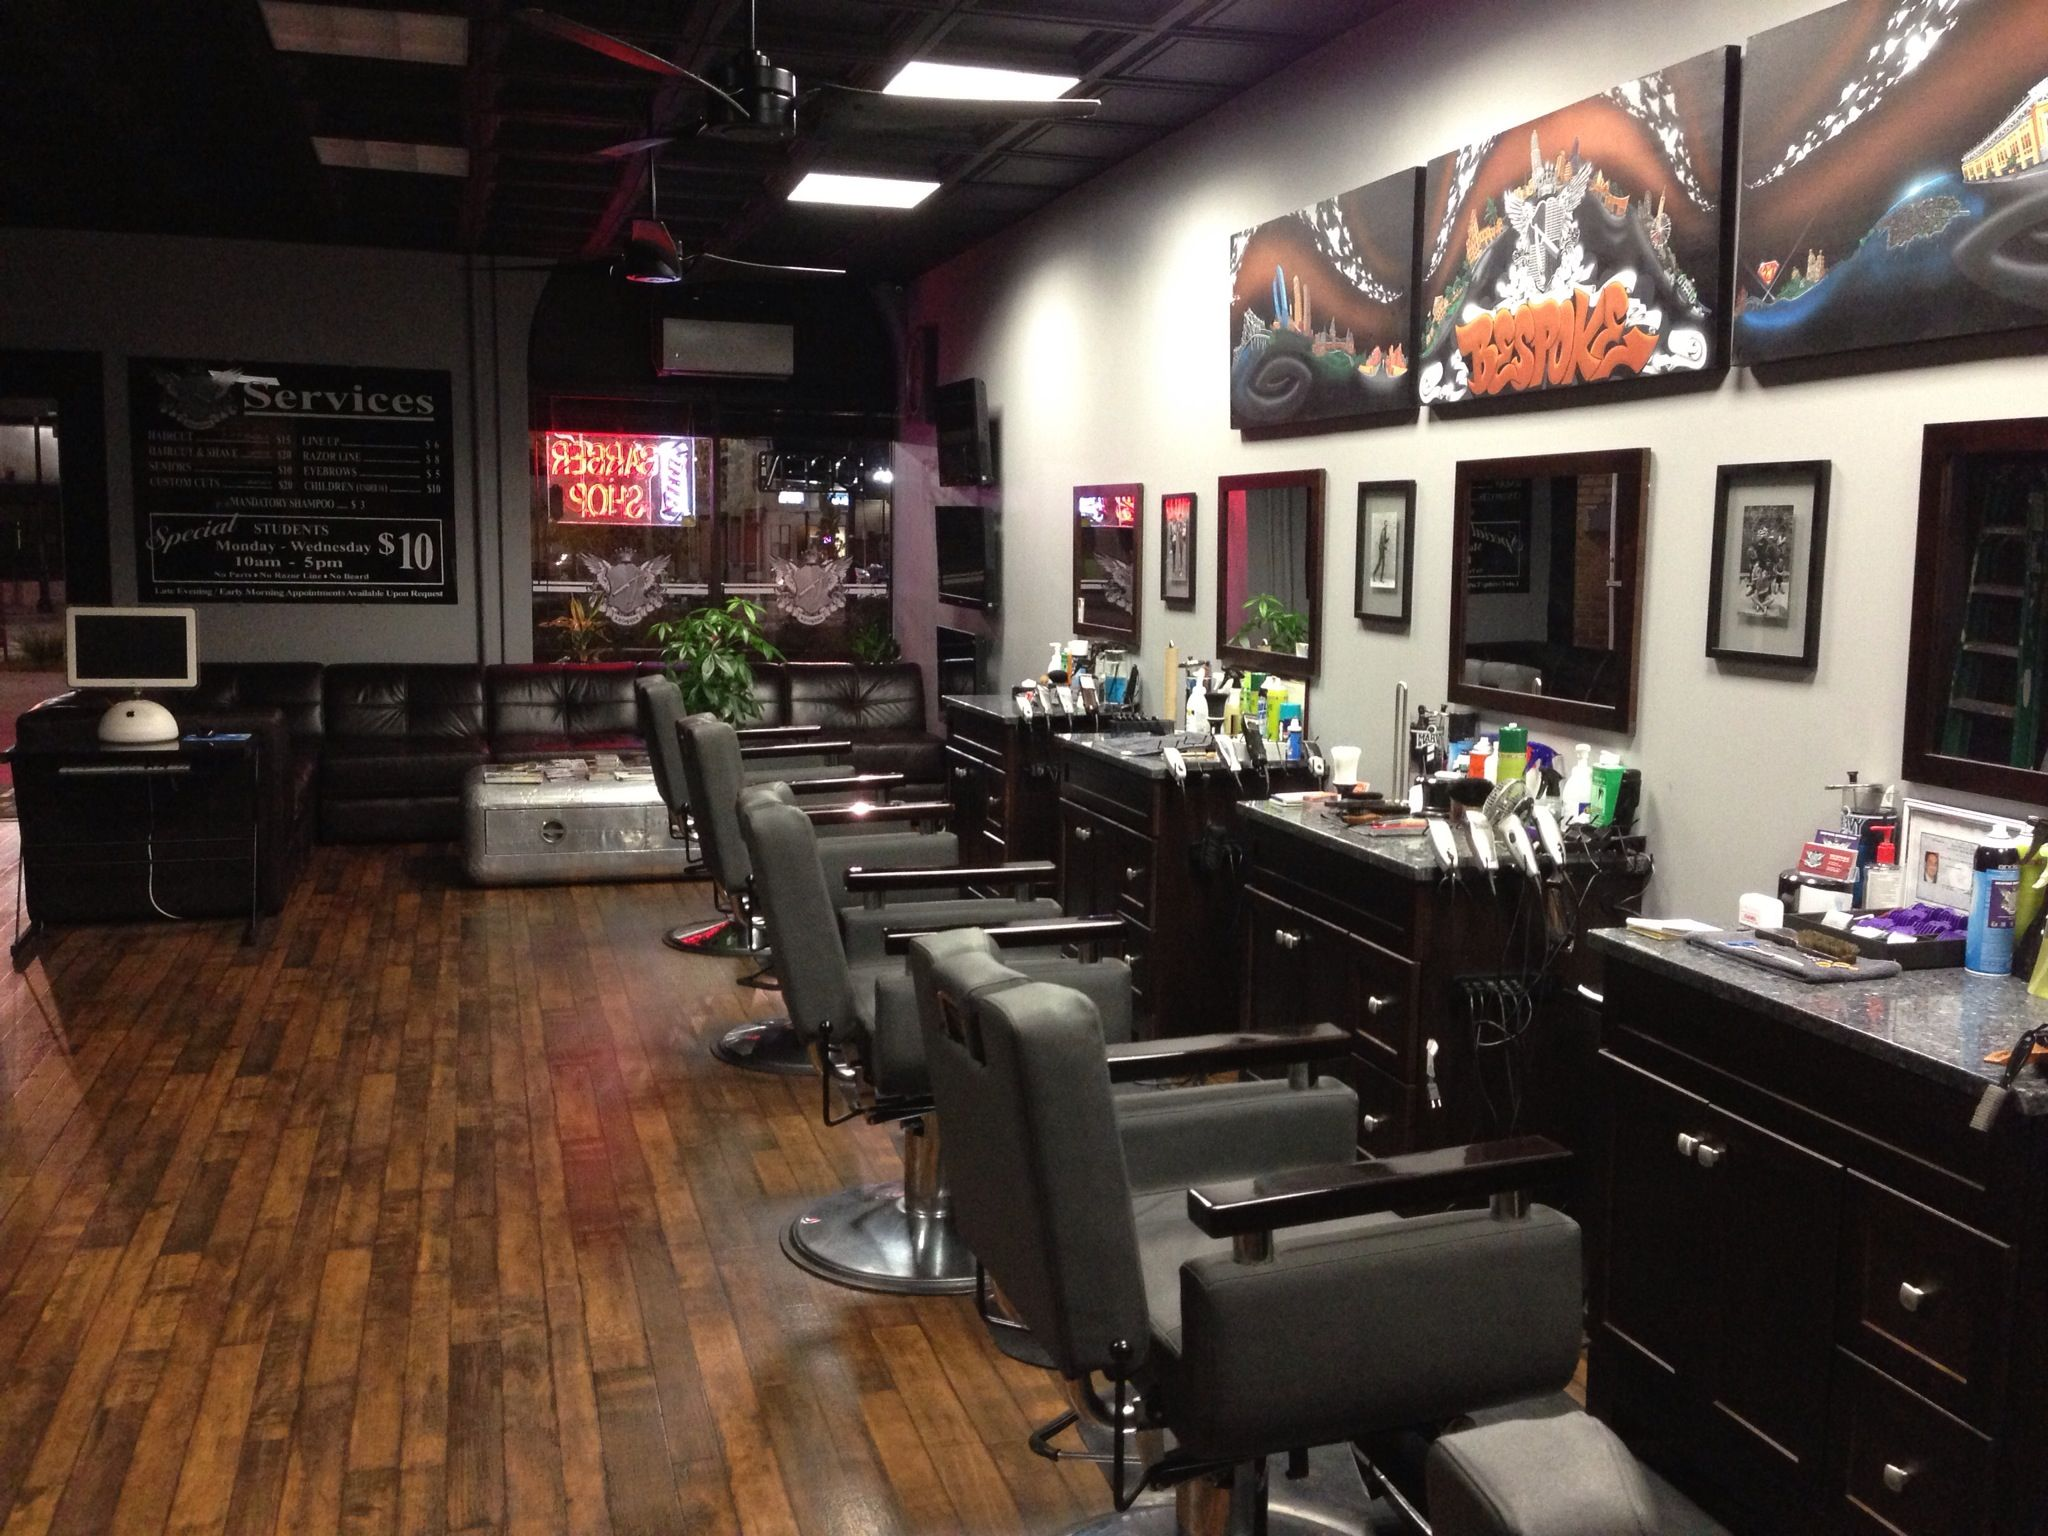 Barber shop ideas - Bespoke Barbershop 419 North Ave Newrochelle Ny 914 365 1665 Westchester